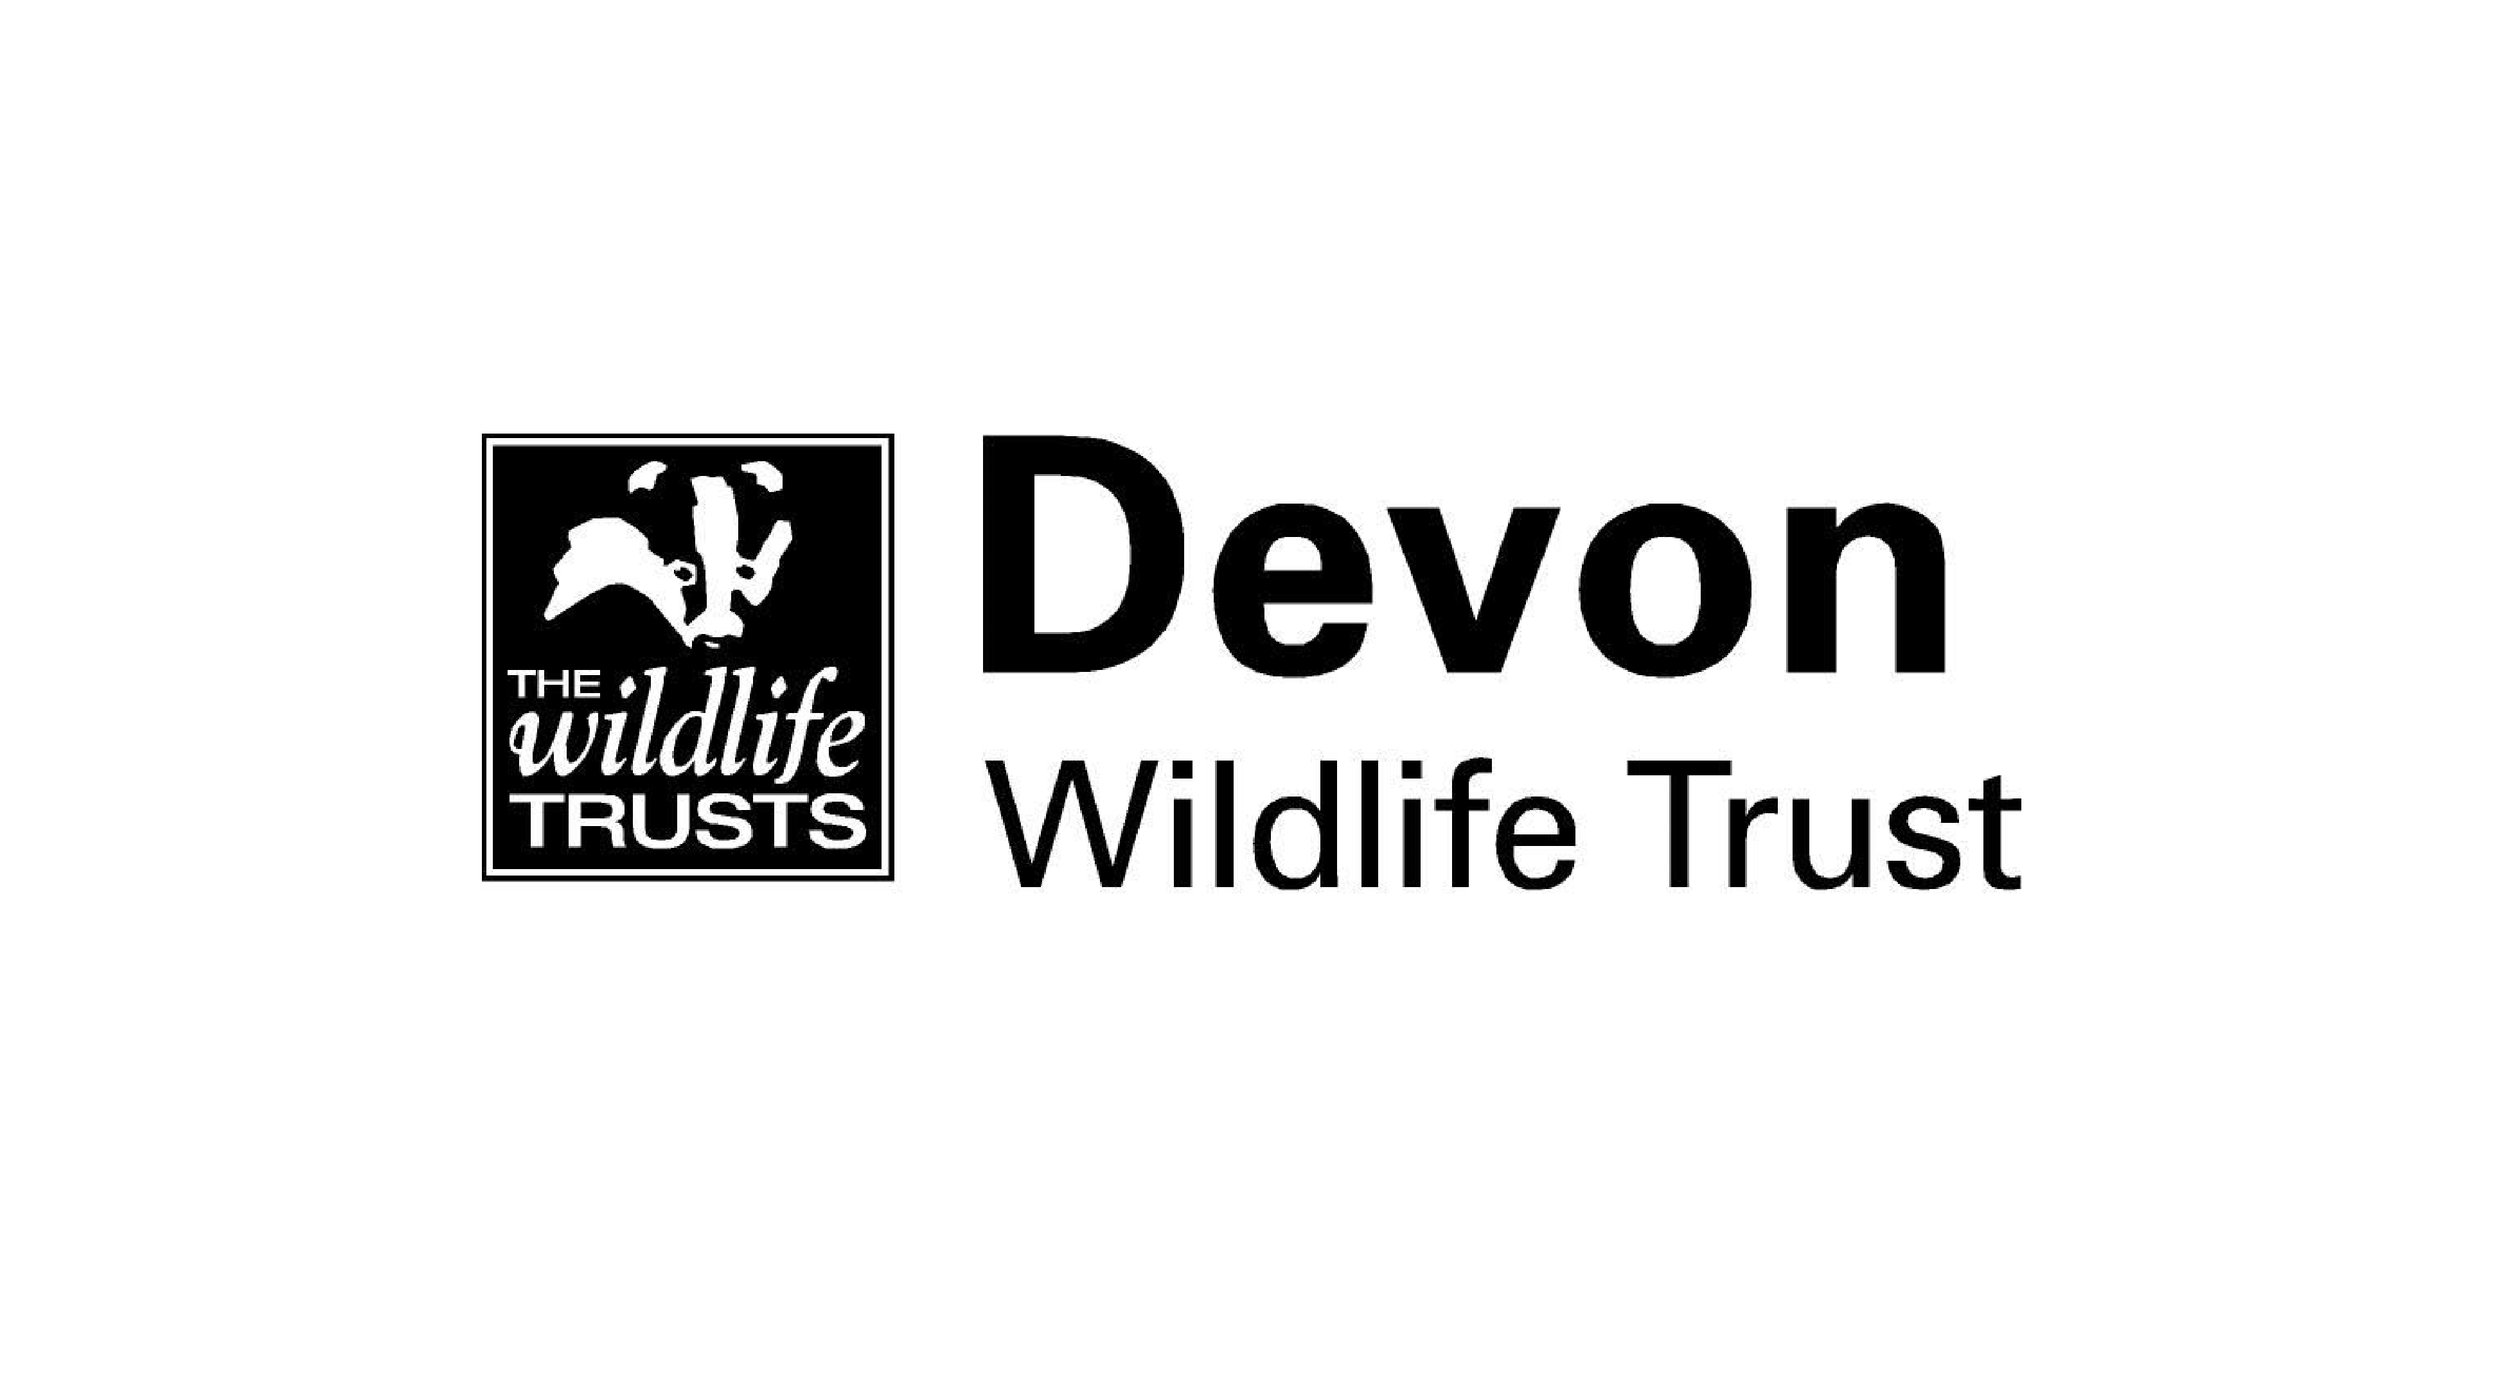 devon wildlife trust.jpg